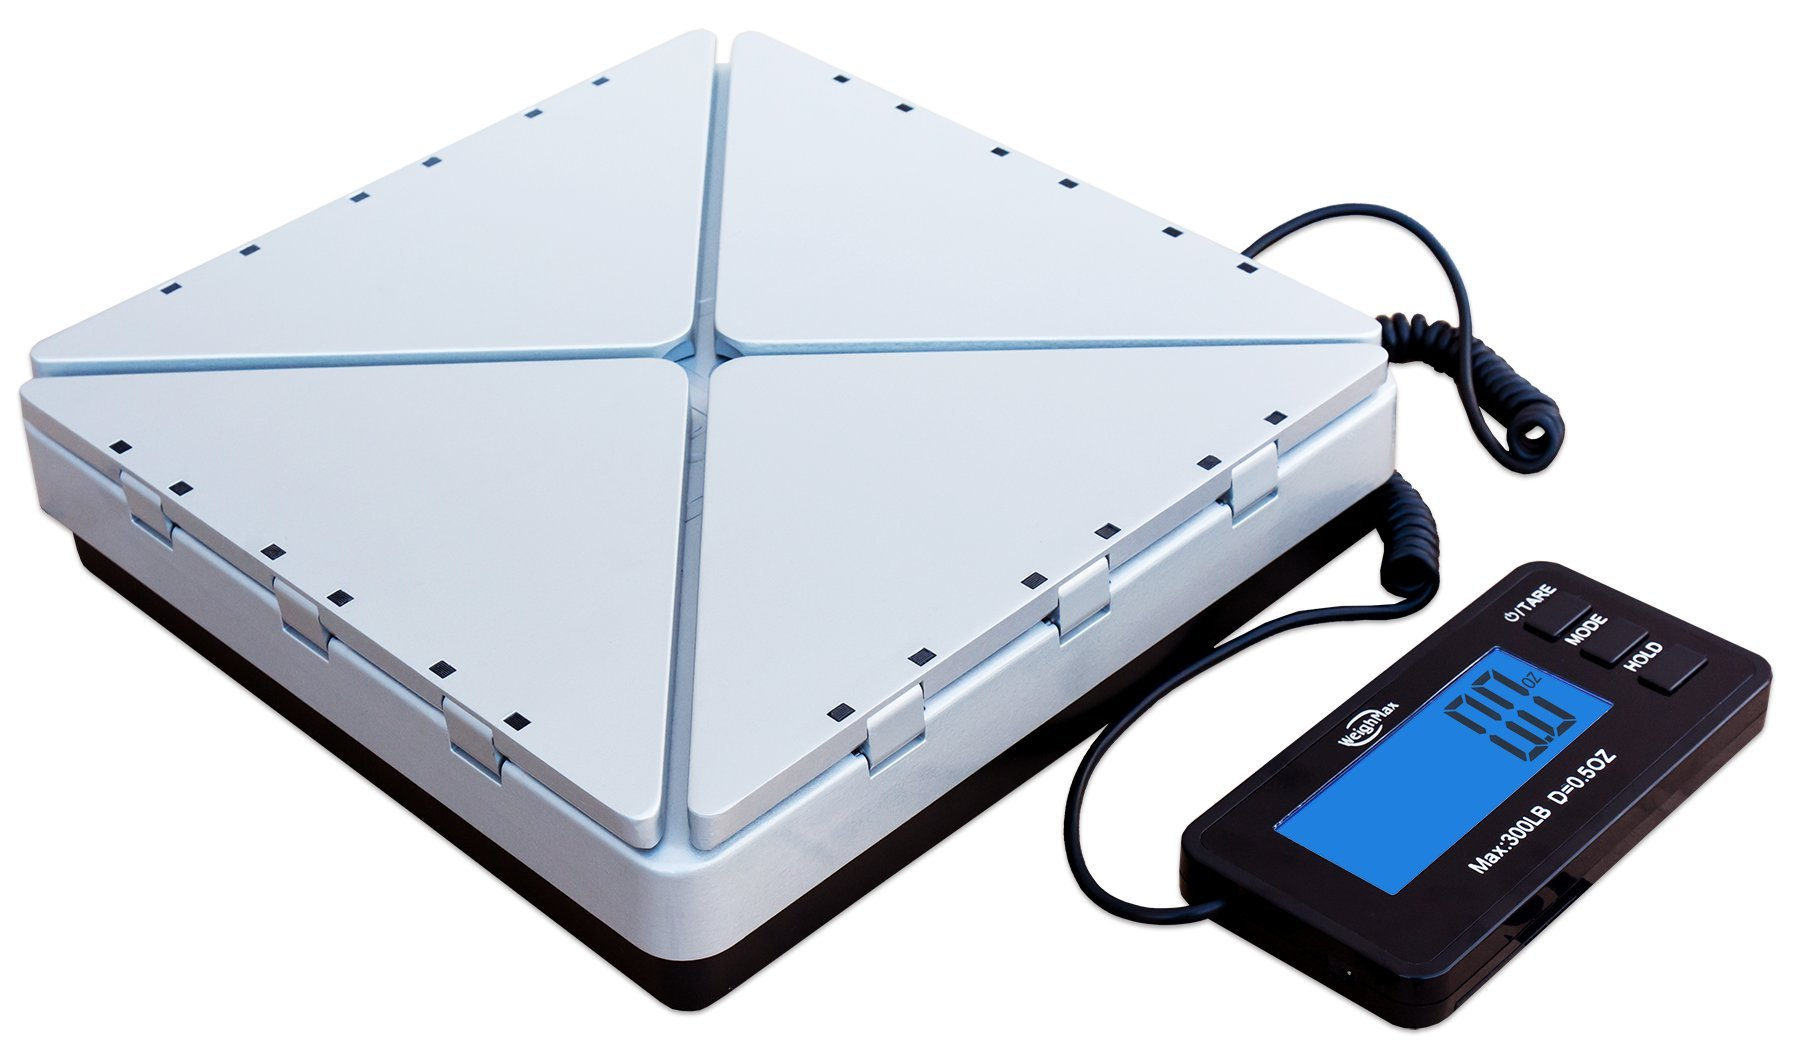 No1. Best Scale--Weighmax Transformer Digital Metal-Built shipping postal scale, 300lbs by 0.02lb